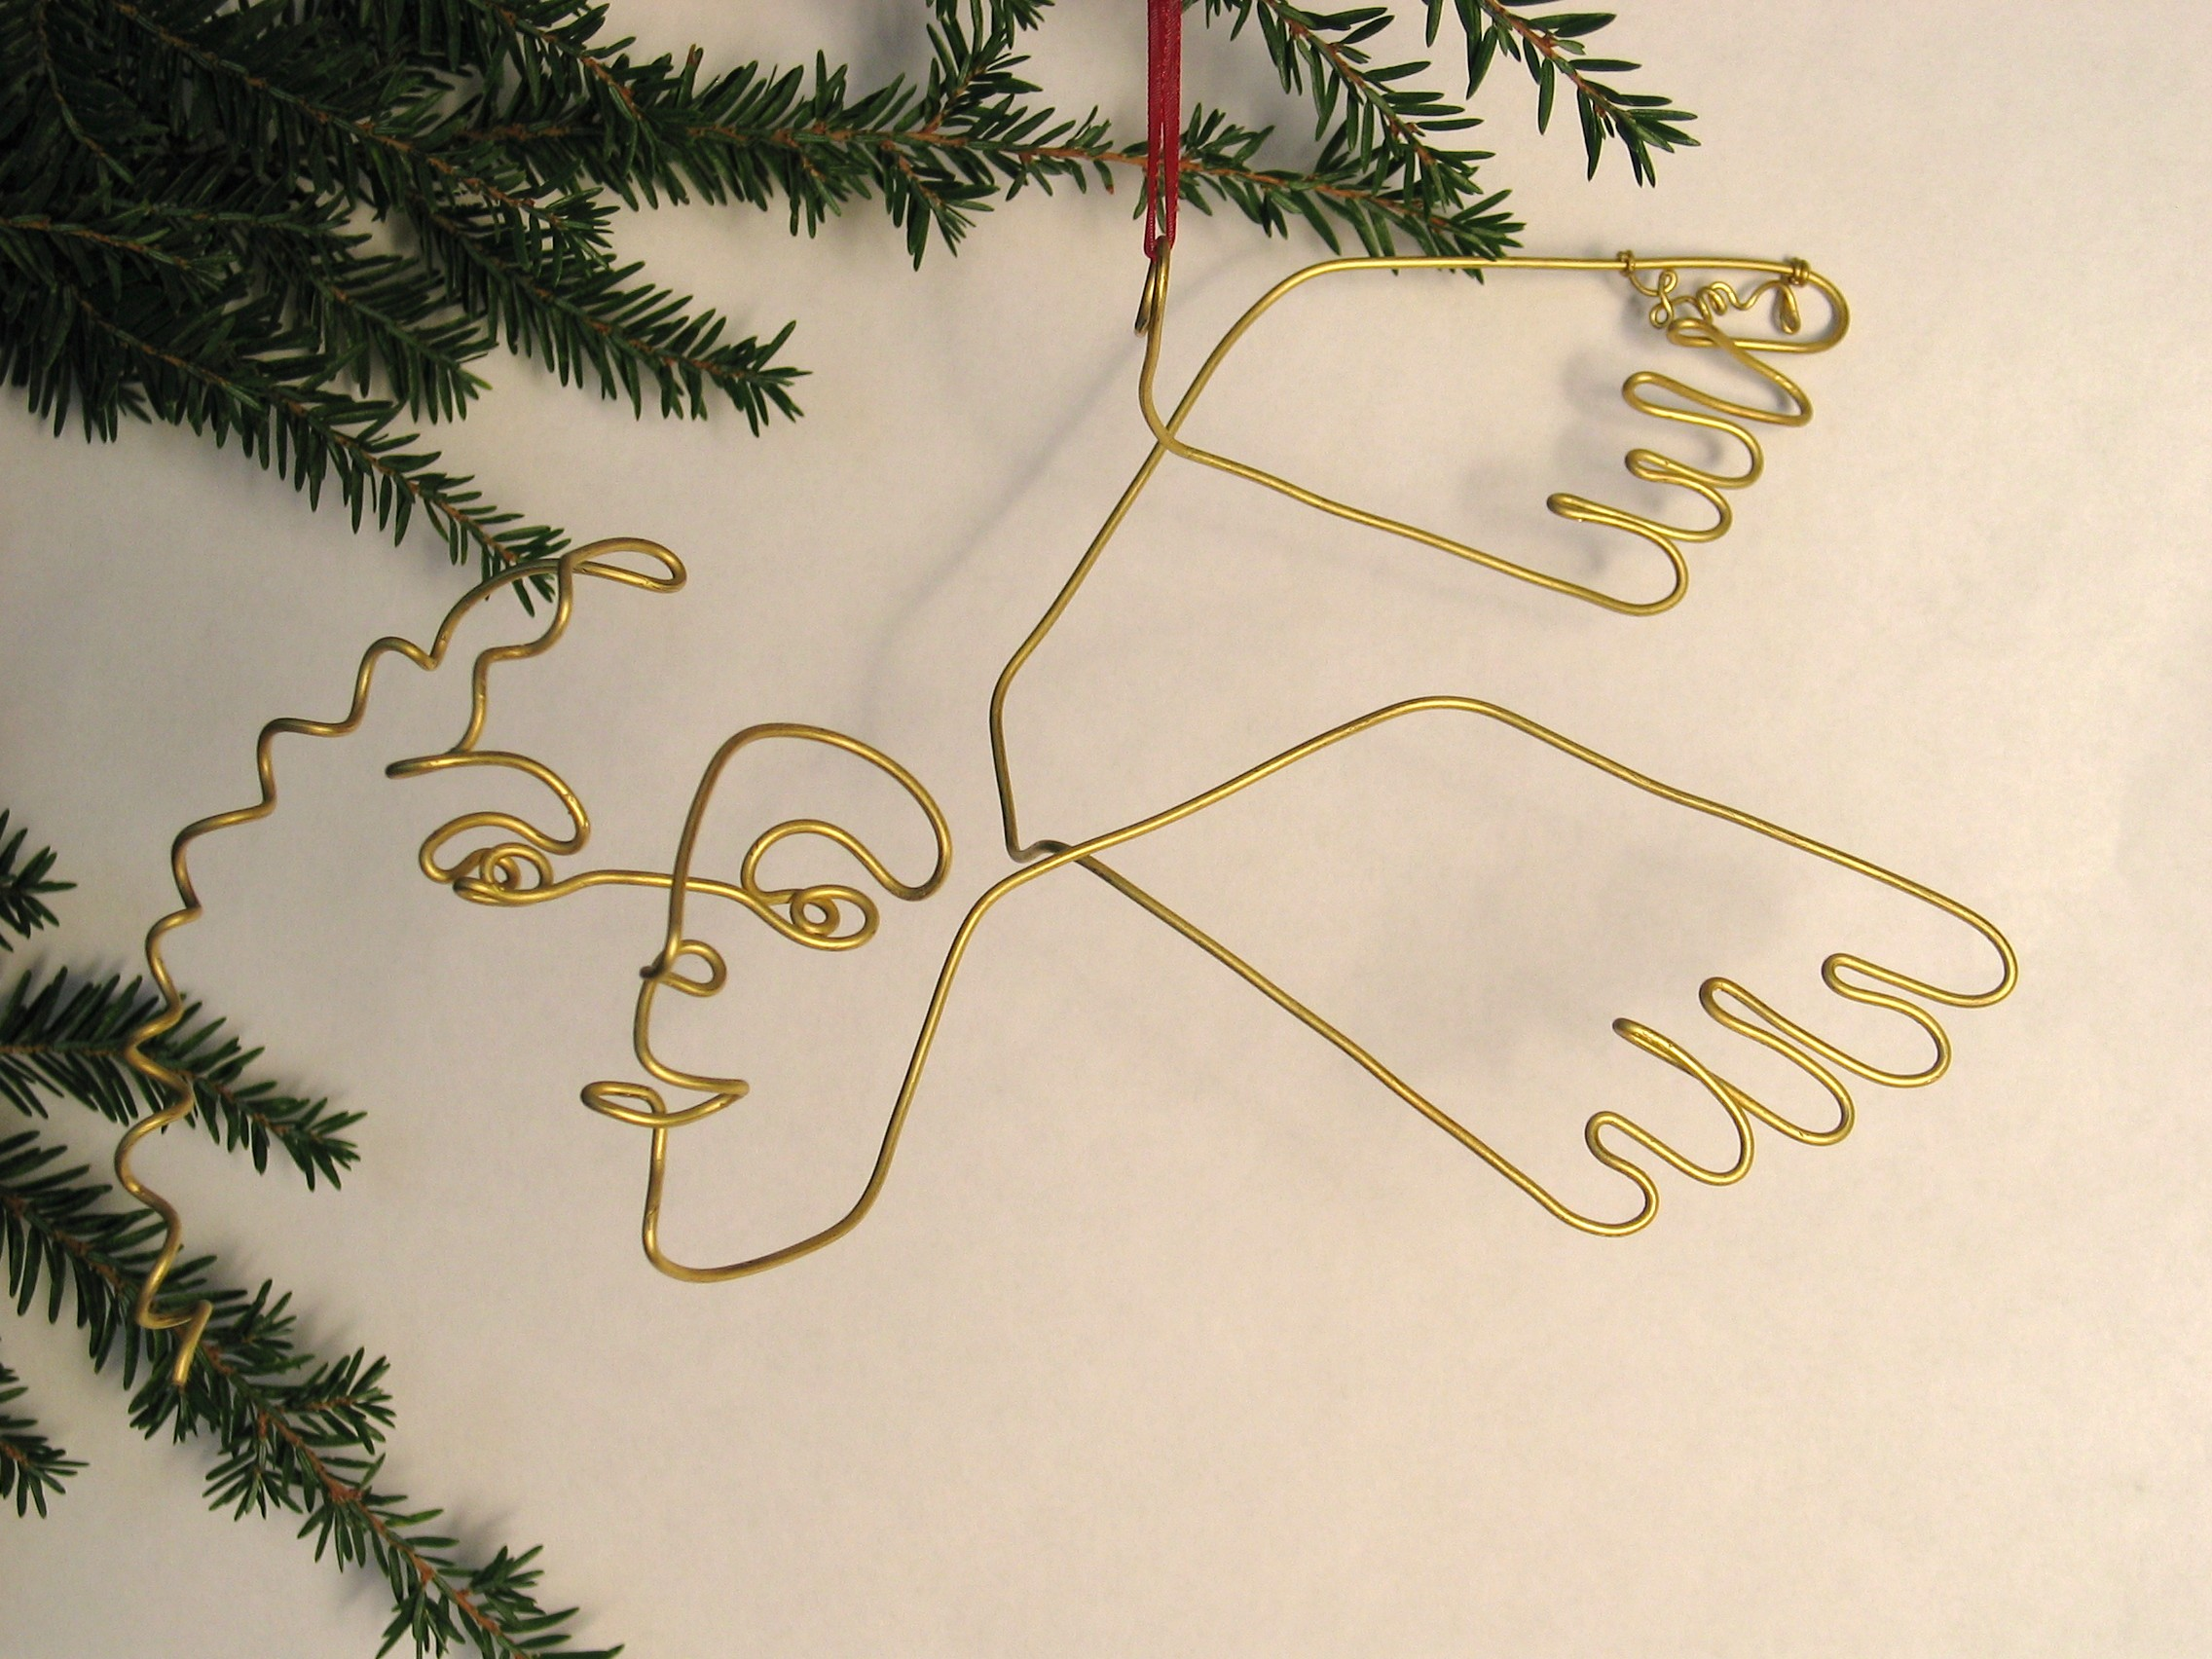 Wire Sculpture Ornaments for Christmas Holiday Decor